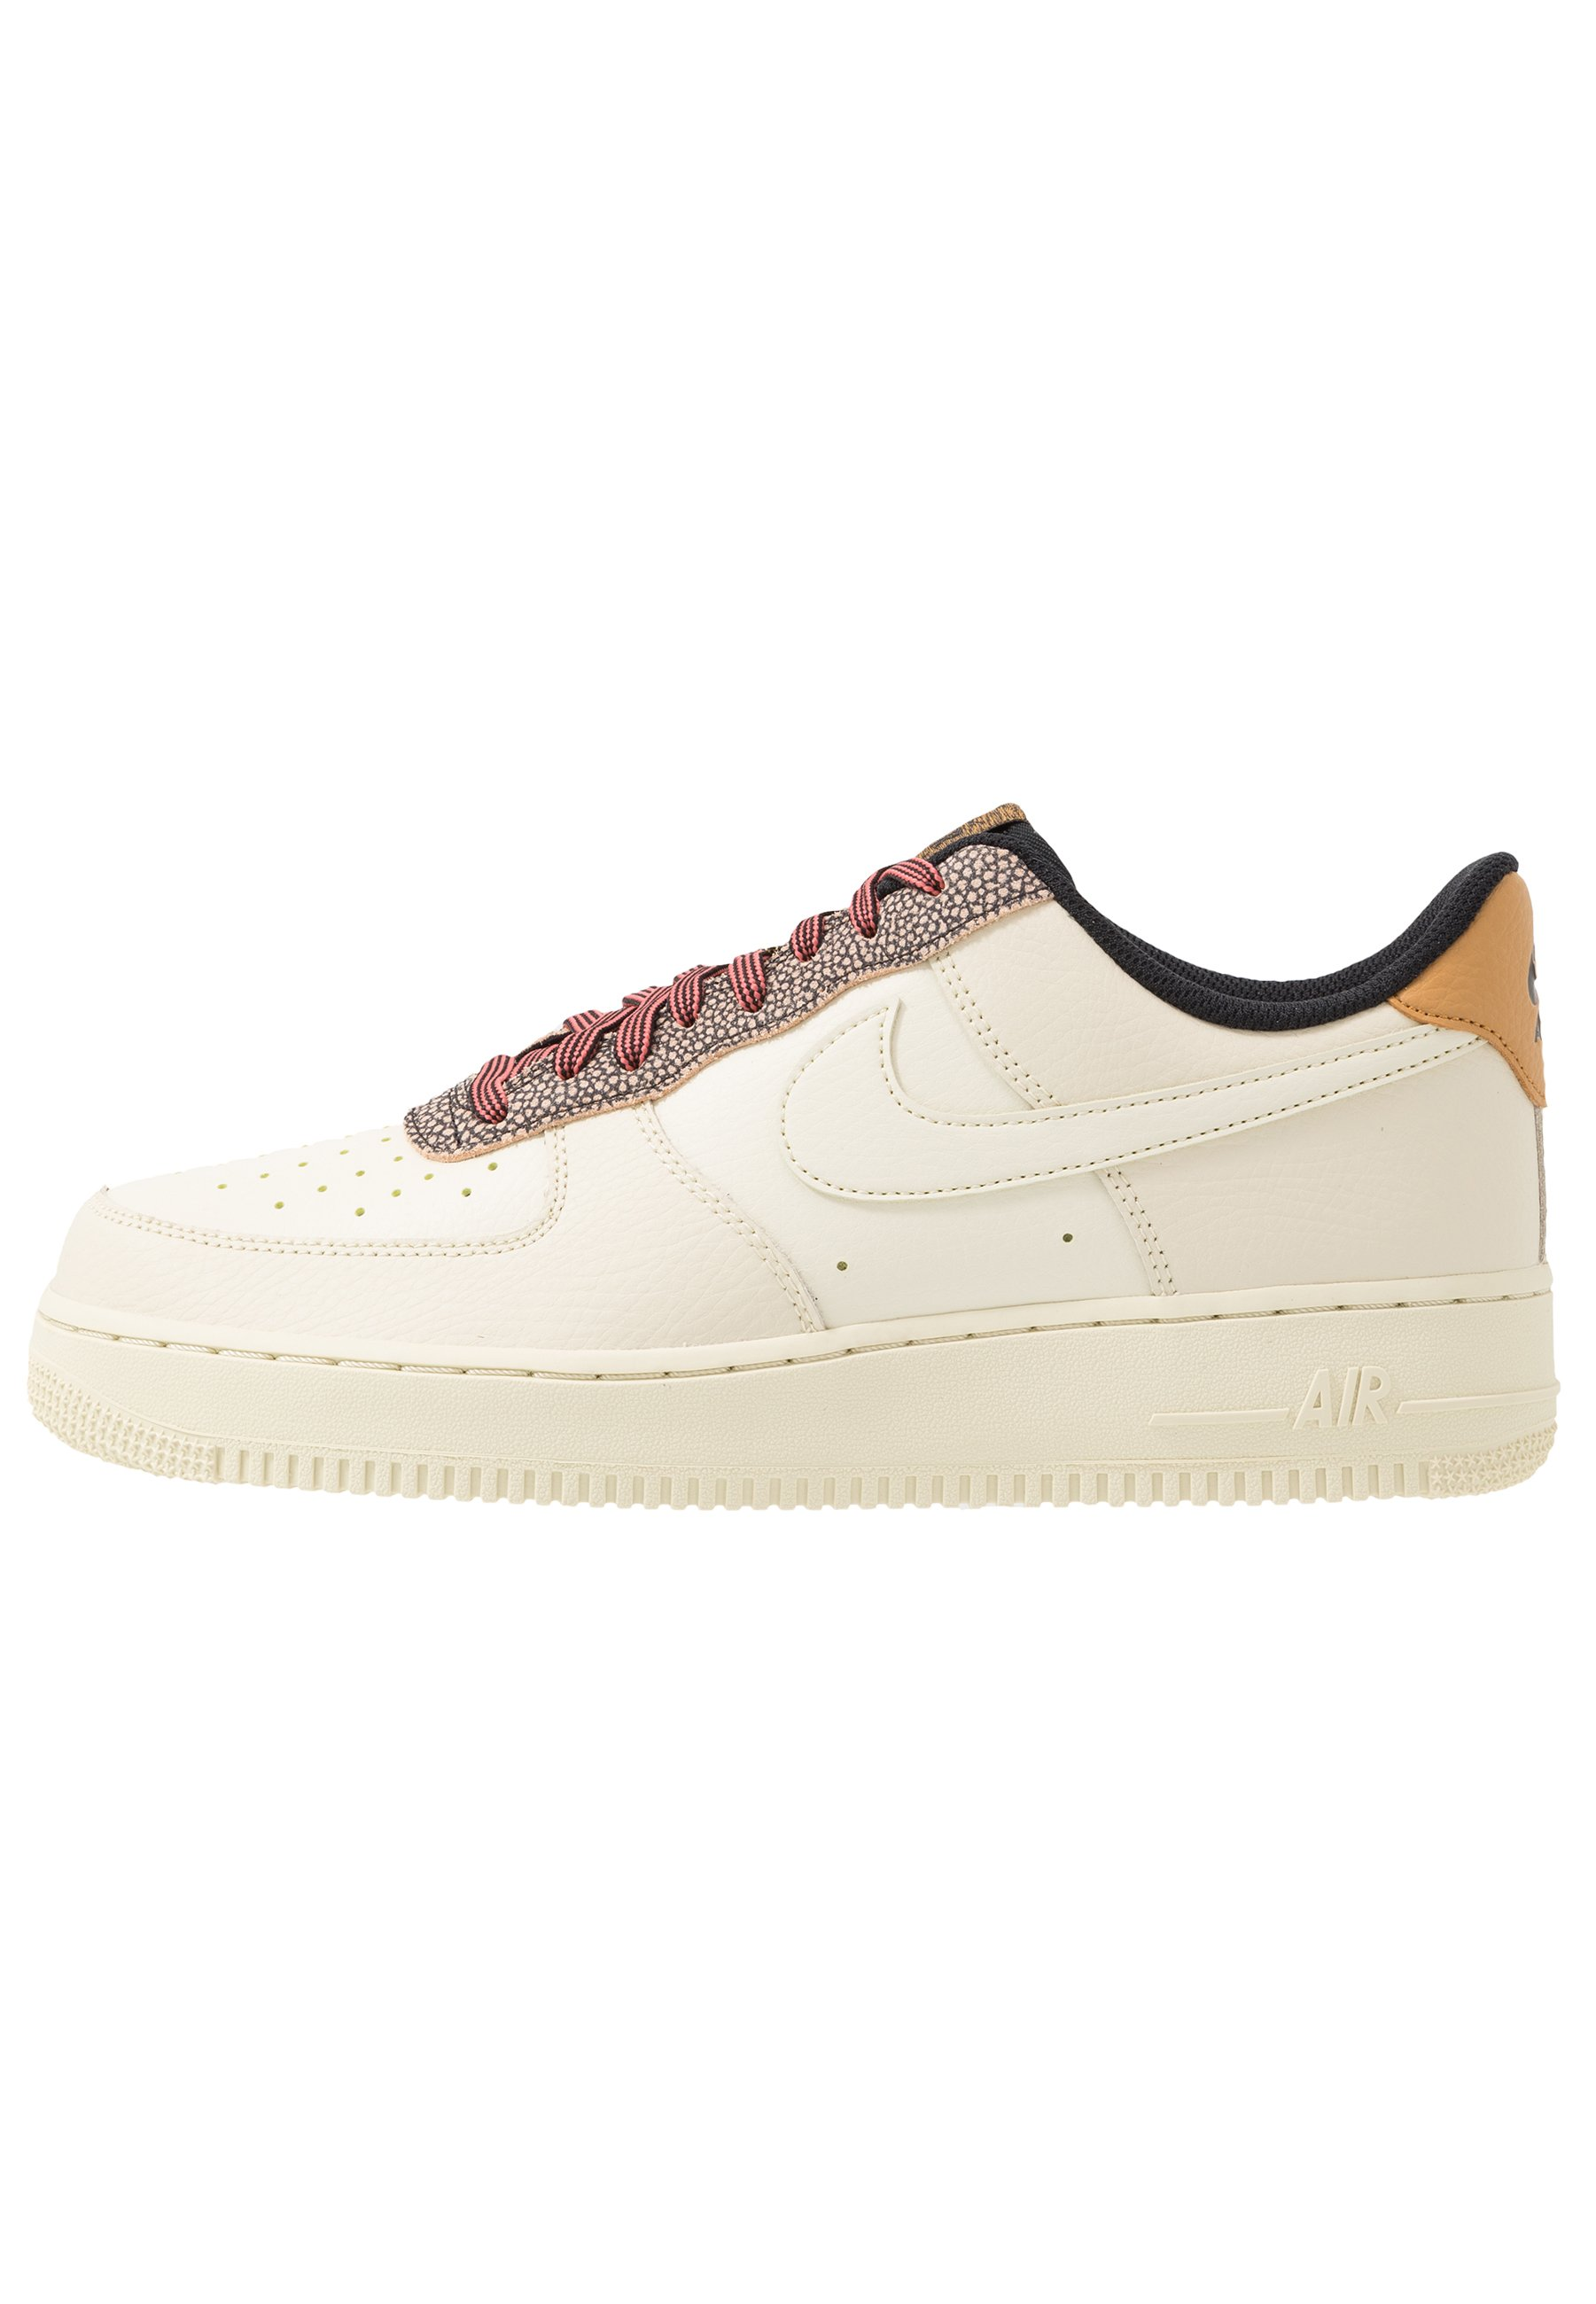 AIR FORCE 1 '07 LV8 - Sneakers basse - wheat/shimmer/club gold/black